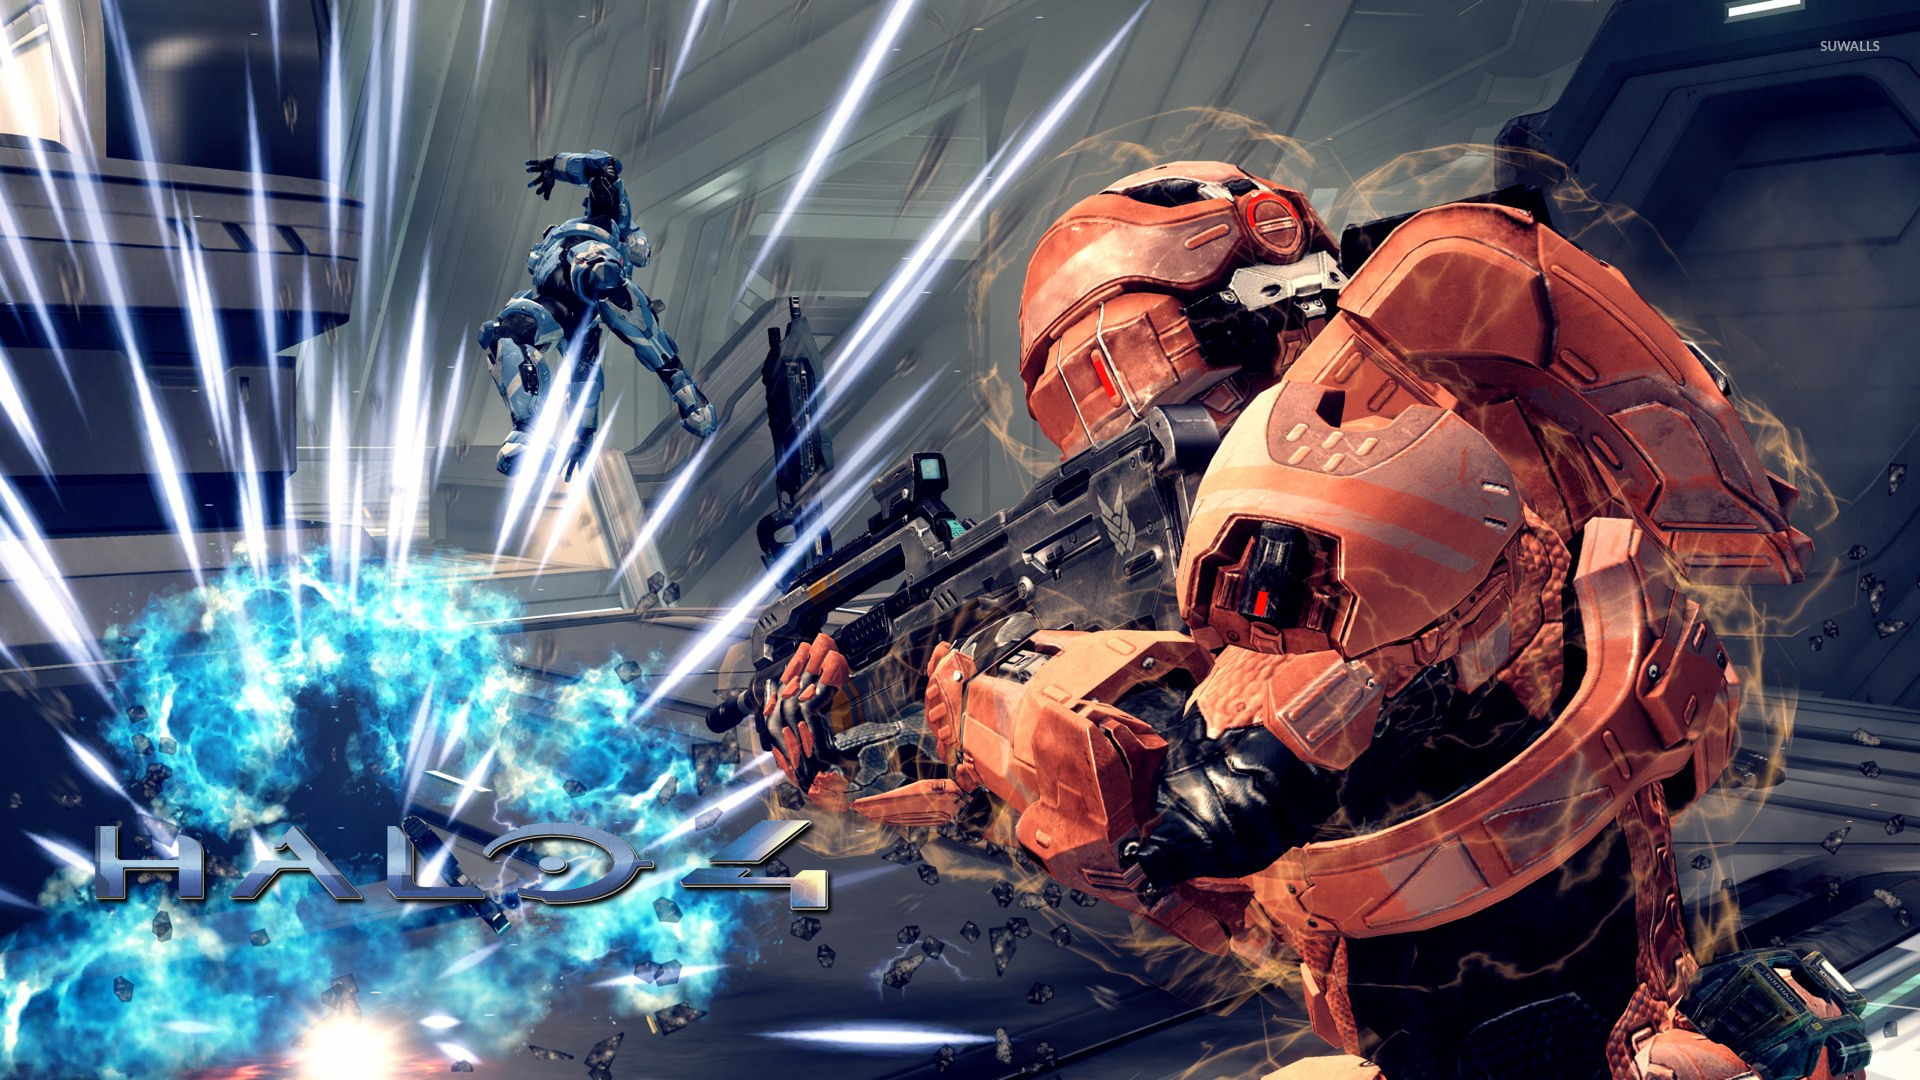 Halo 4 16 Wallpaper Game Wallpapers 15531